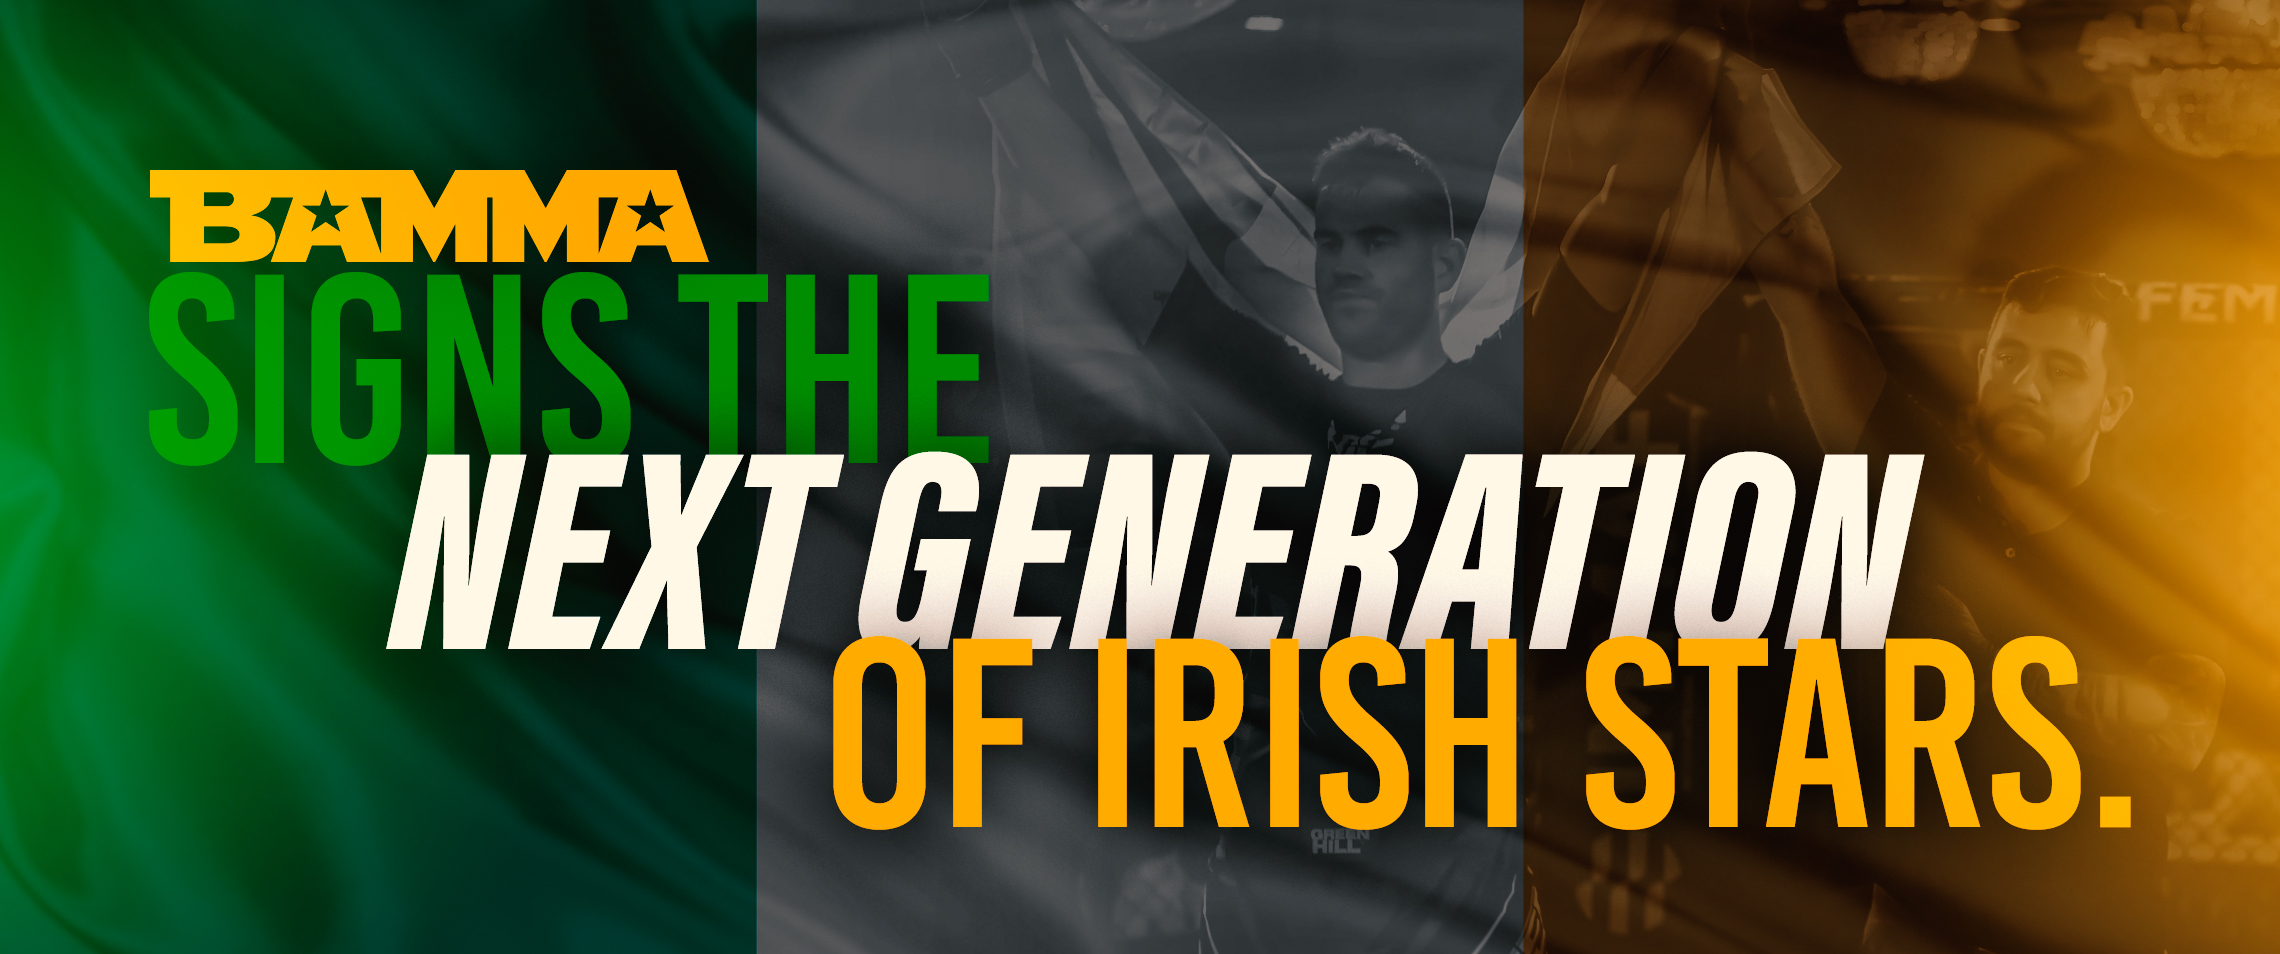 BAMMA Signs The Next Generation Of Irish Stars